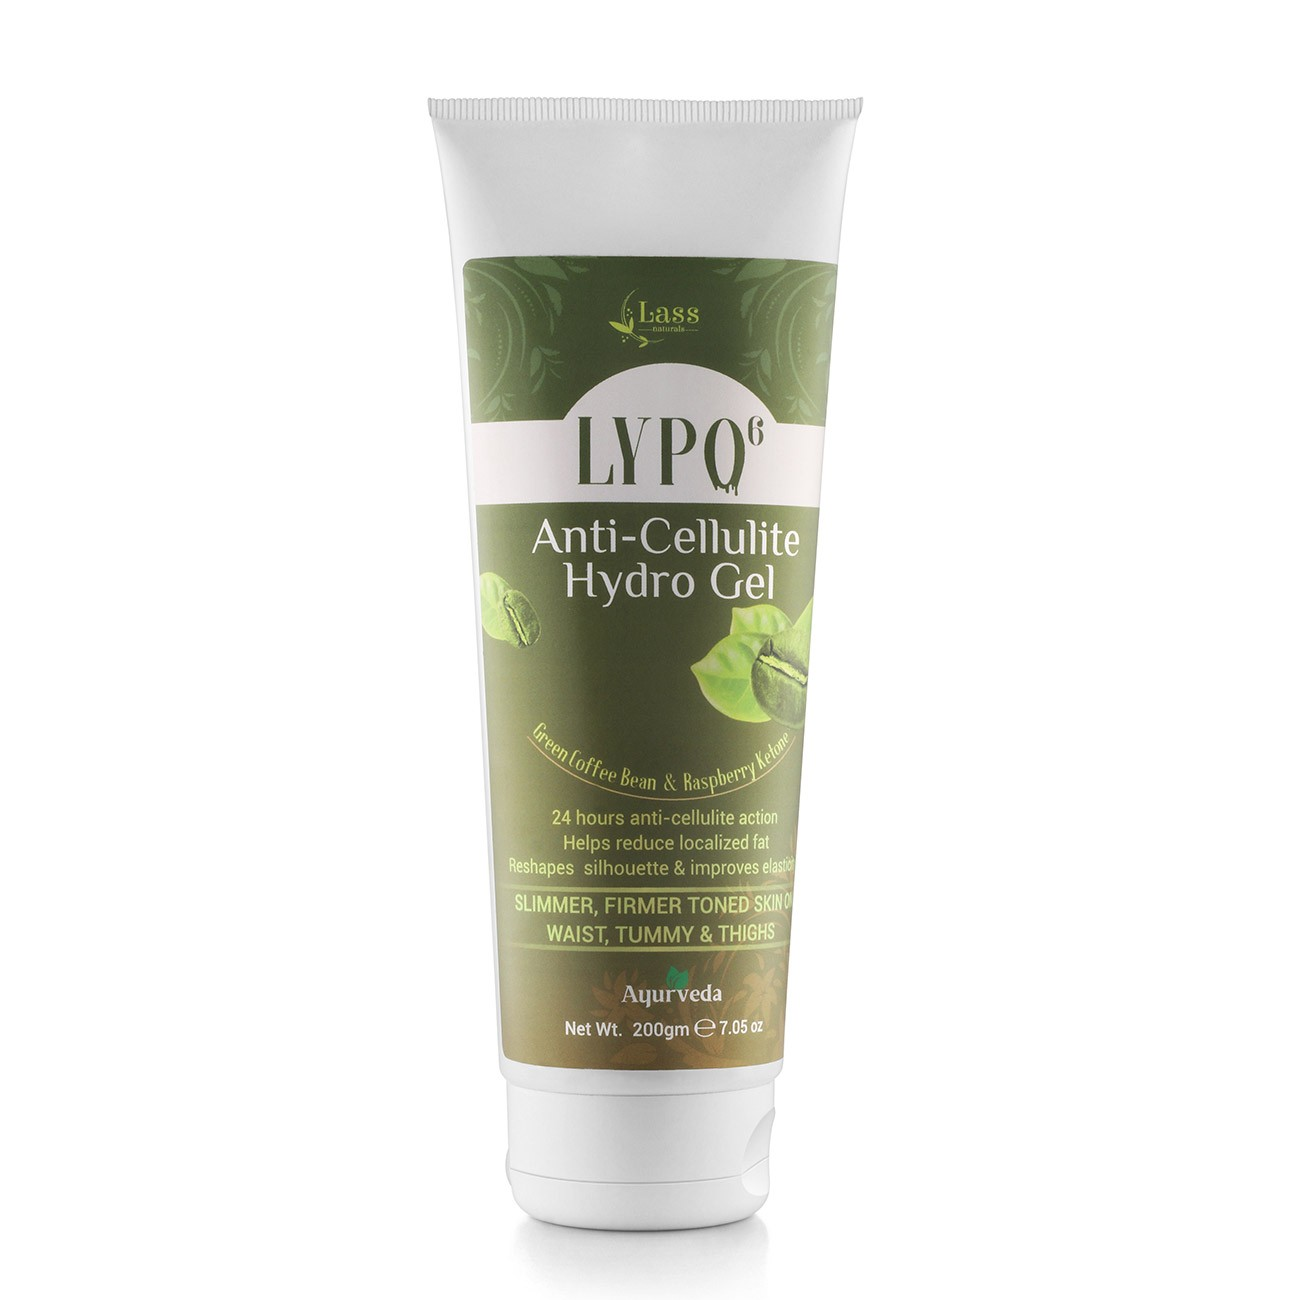 Lypo6 (Anti Cellulite Gel)